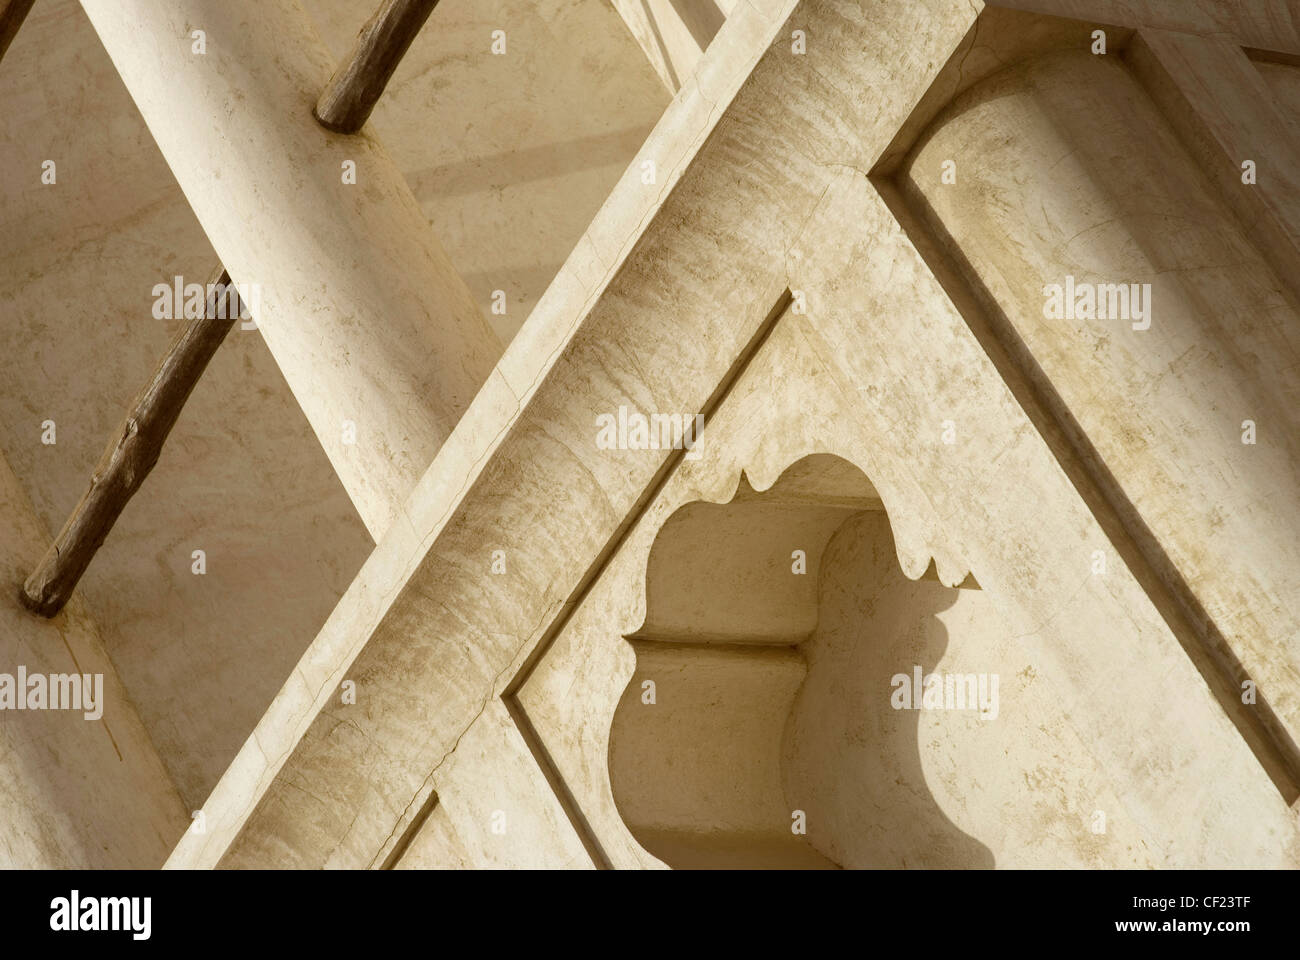 astract middle east traditional architecture in Dubai - Stock Image